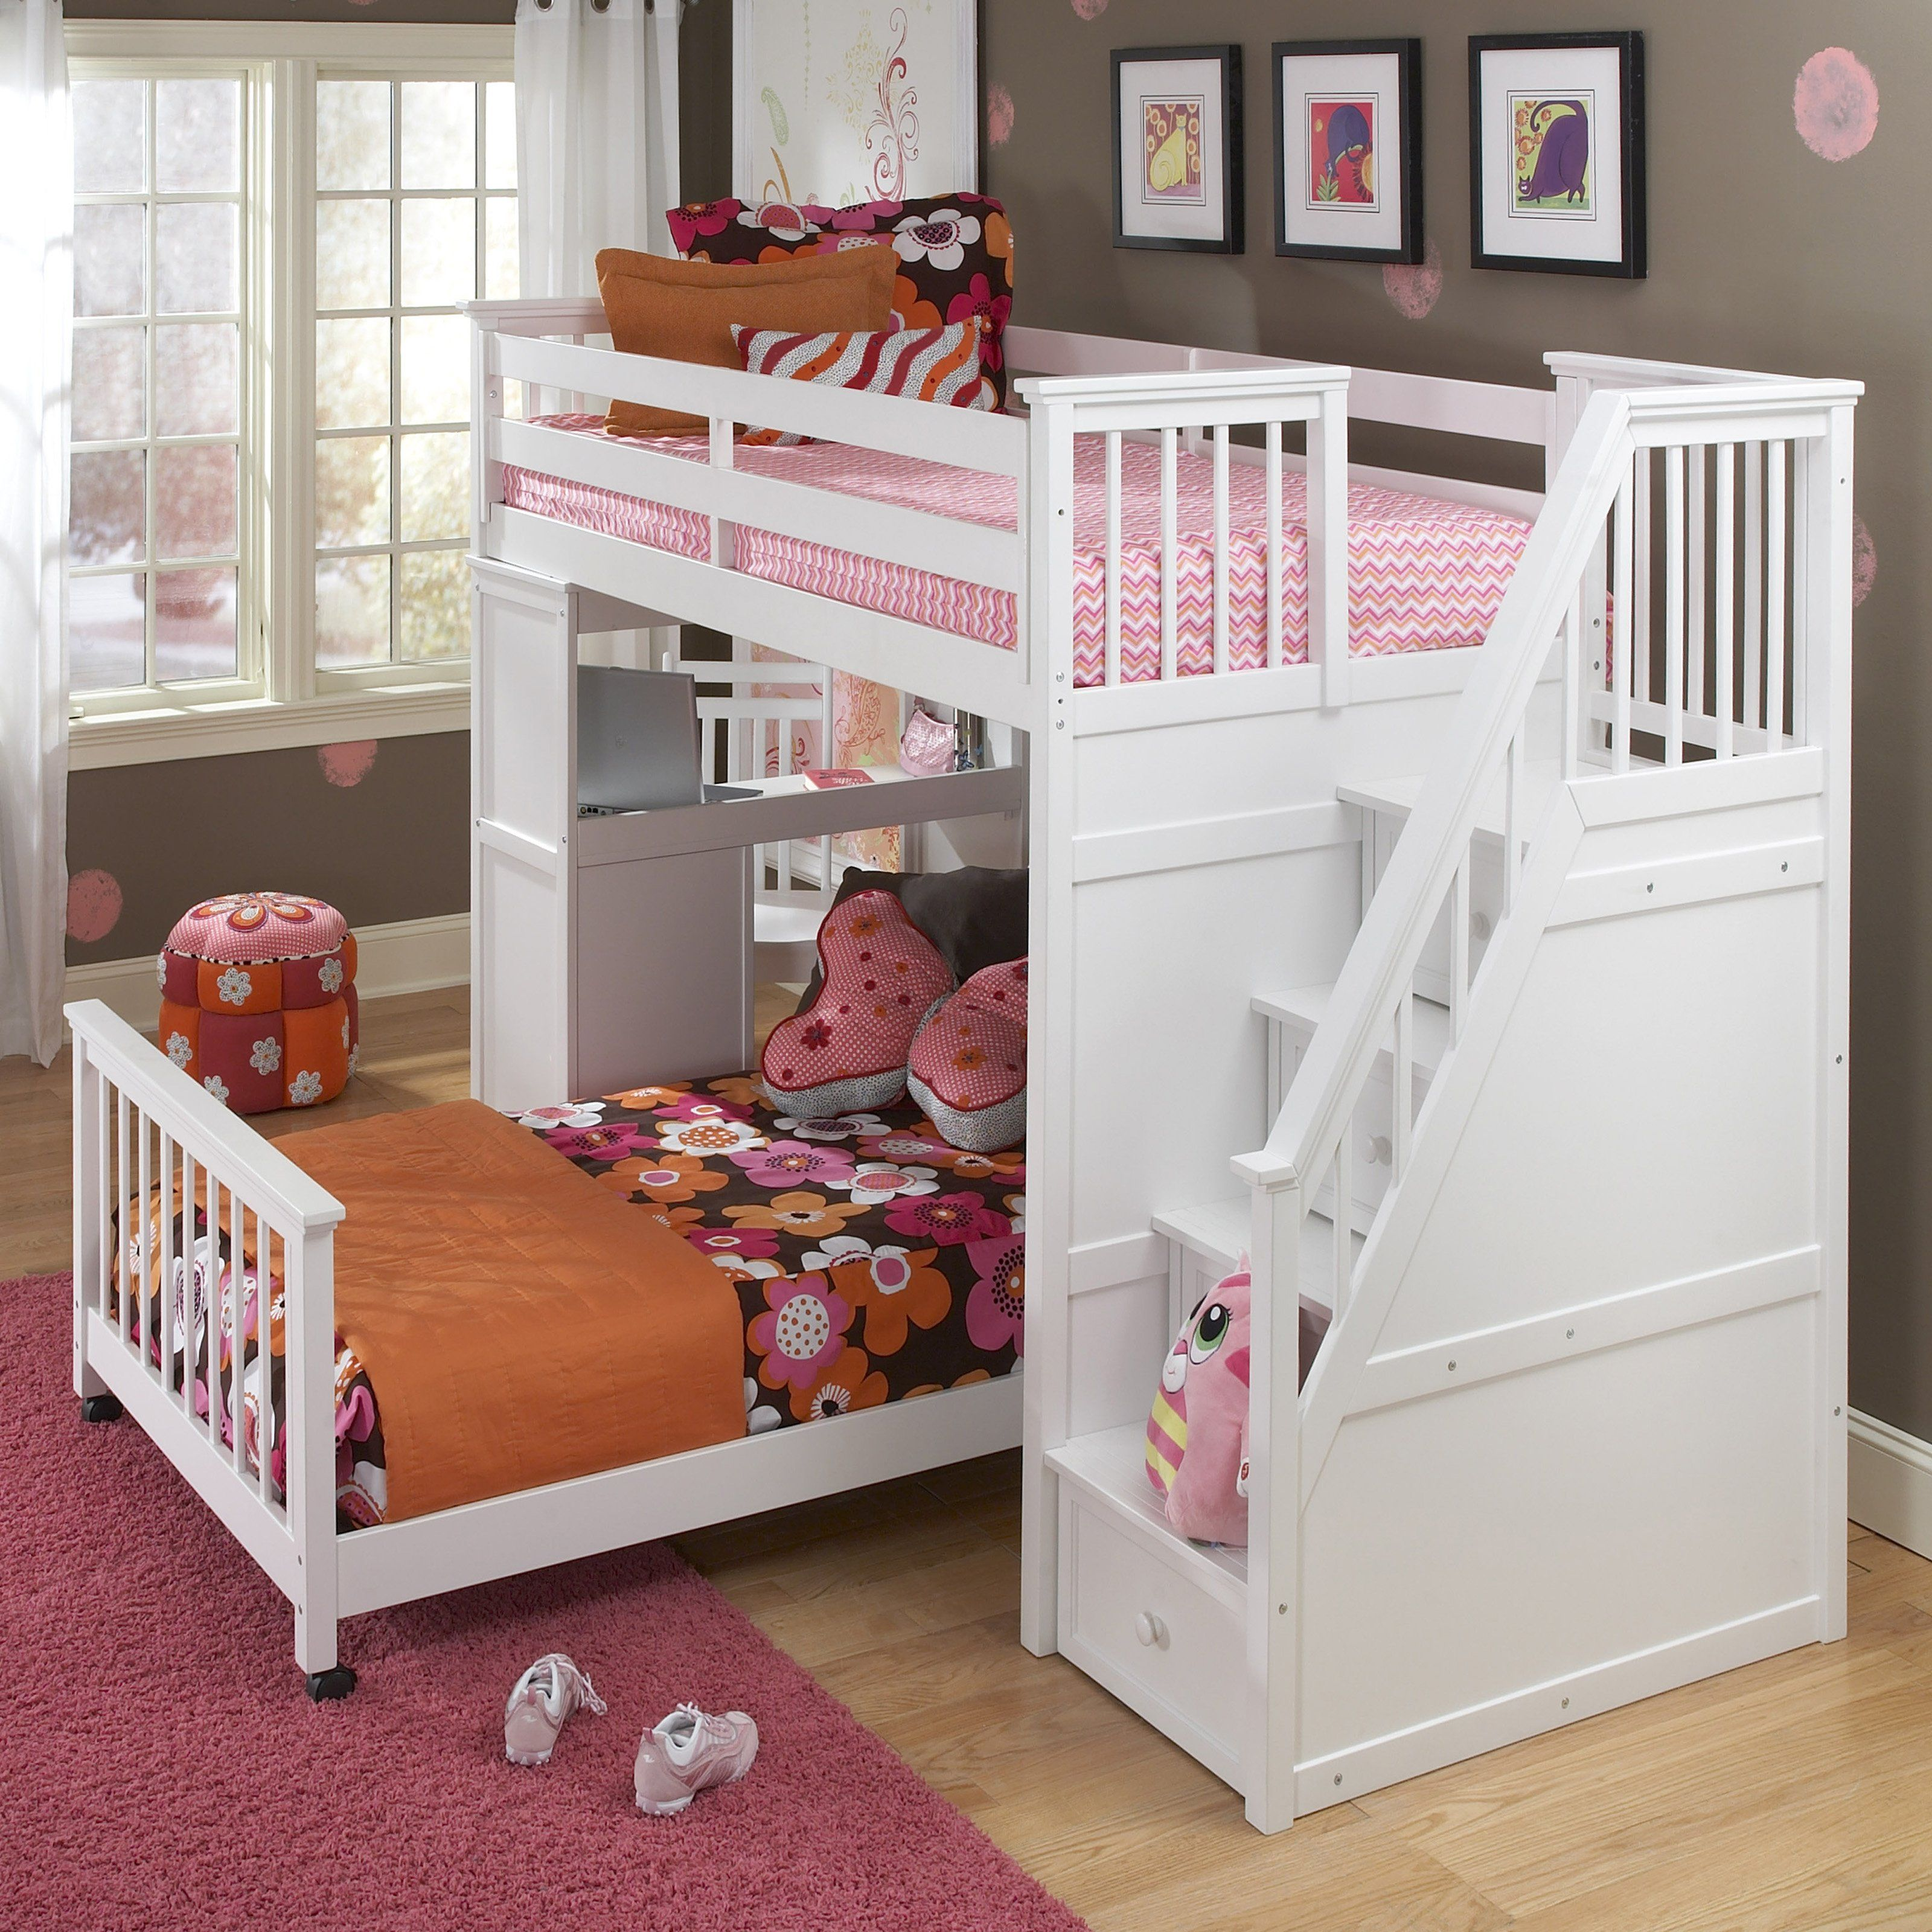 17 Best images about kids Bedrooms on Pinterest   Furniture  Daybed sets  and Ikea bunk bed. 17 Best images about kids Bedrooms on Pinterest   Furniture